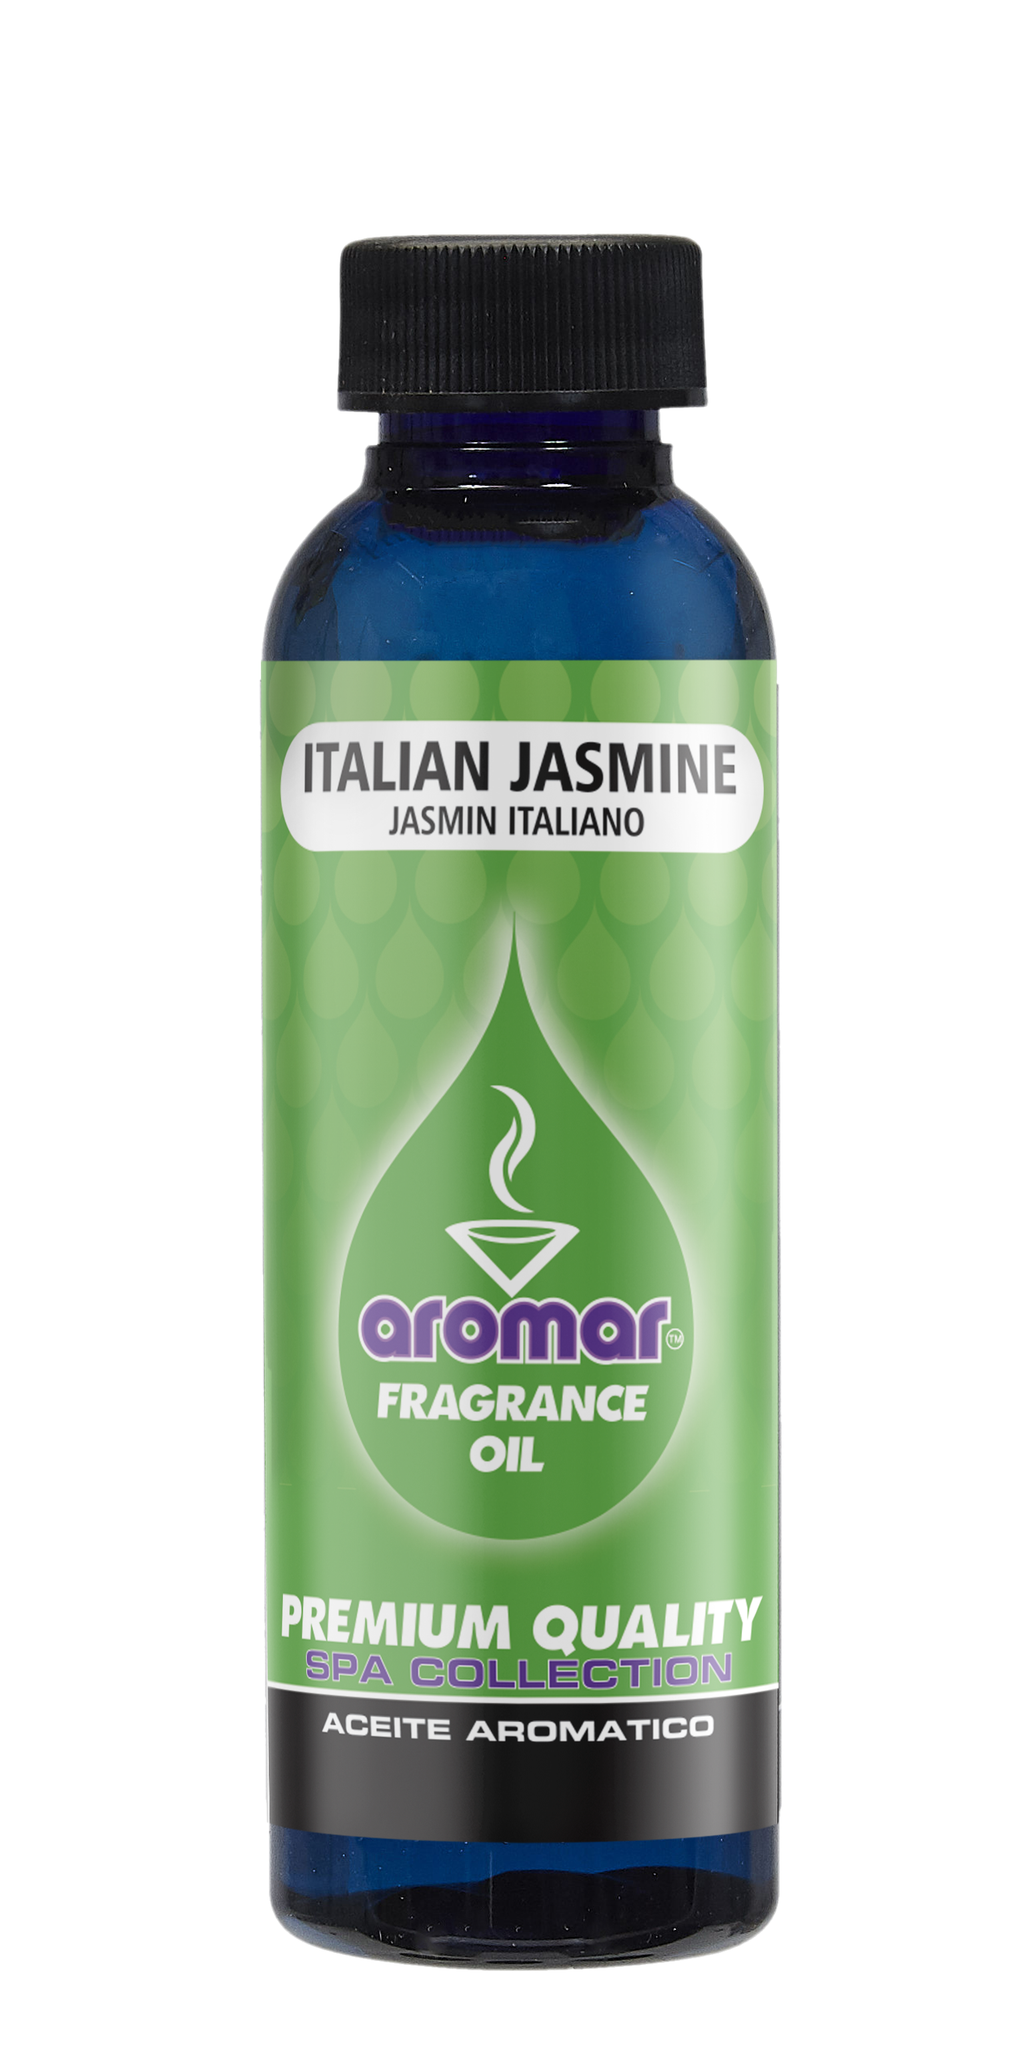 Italian Jasmine Fragrance Oil